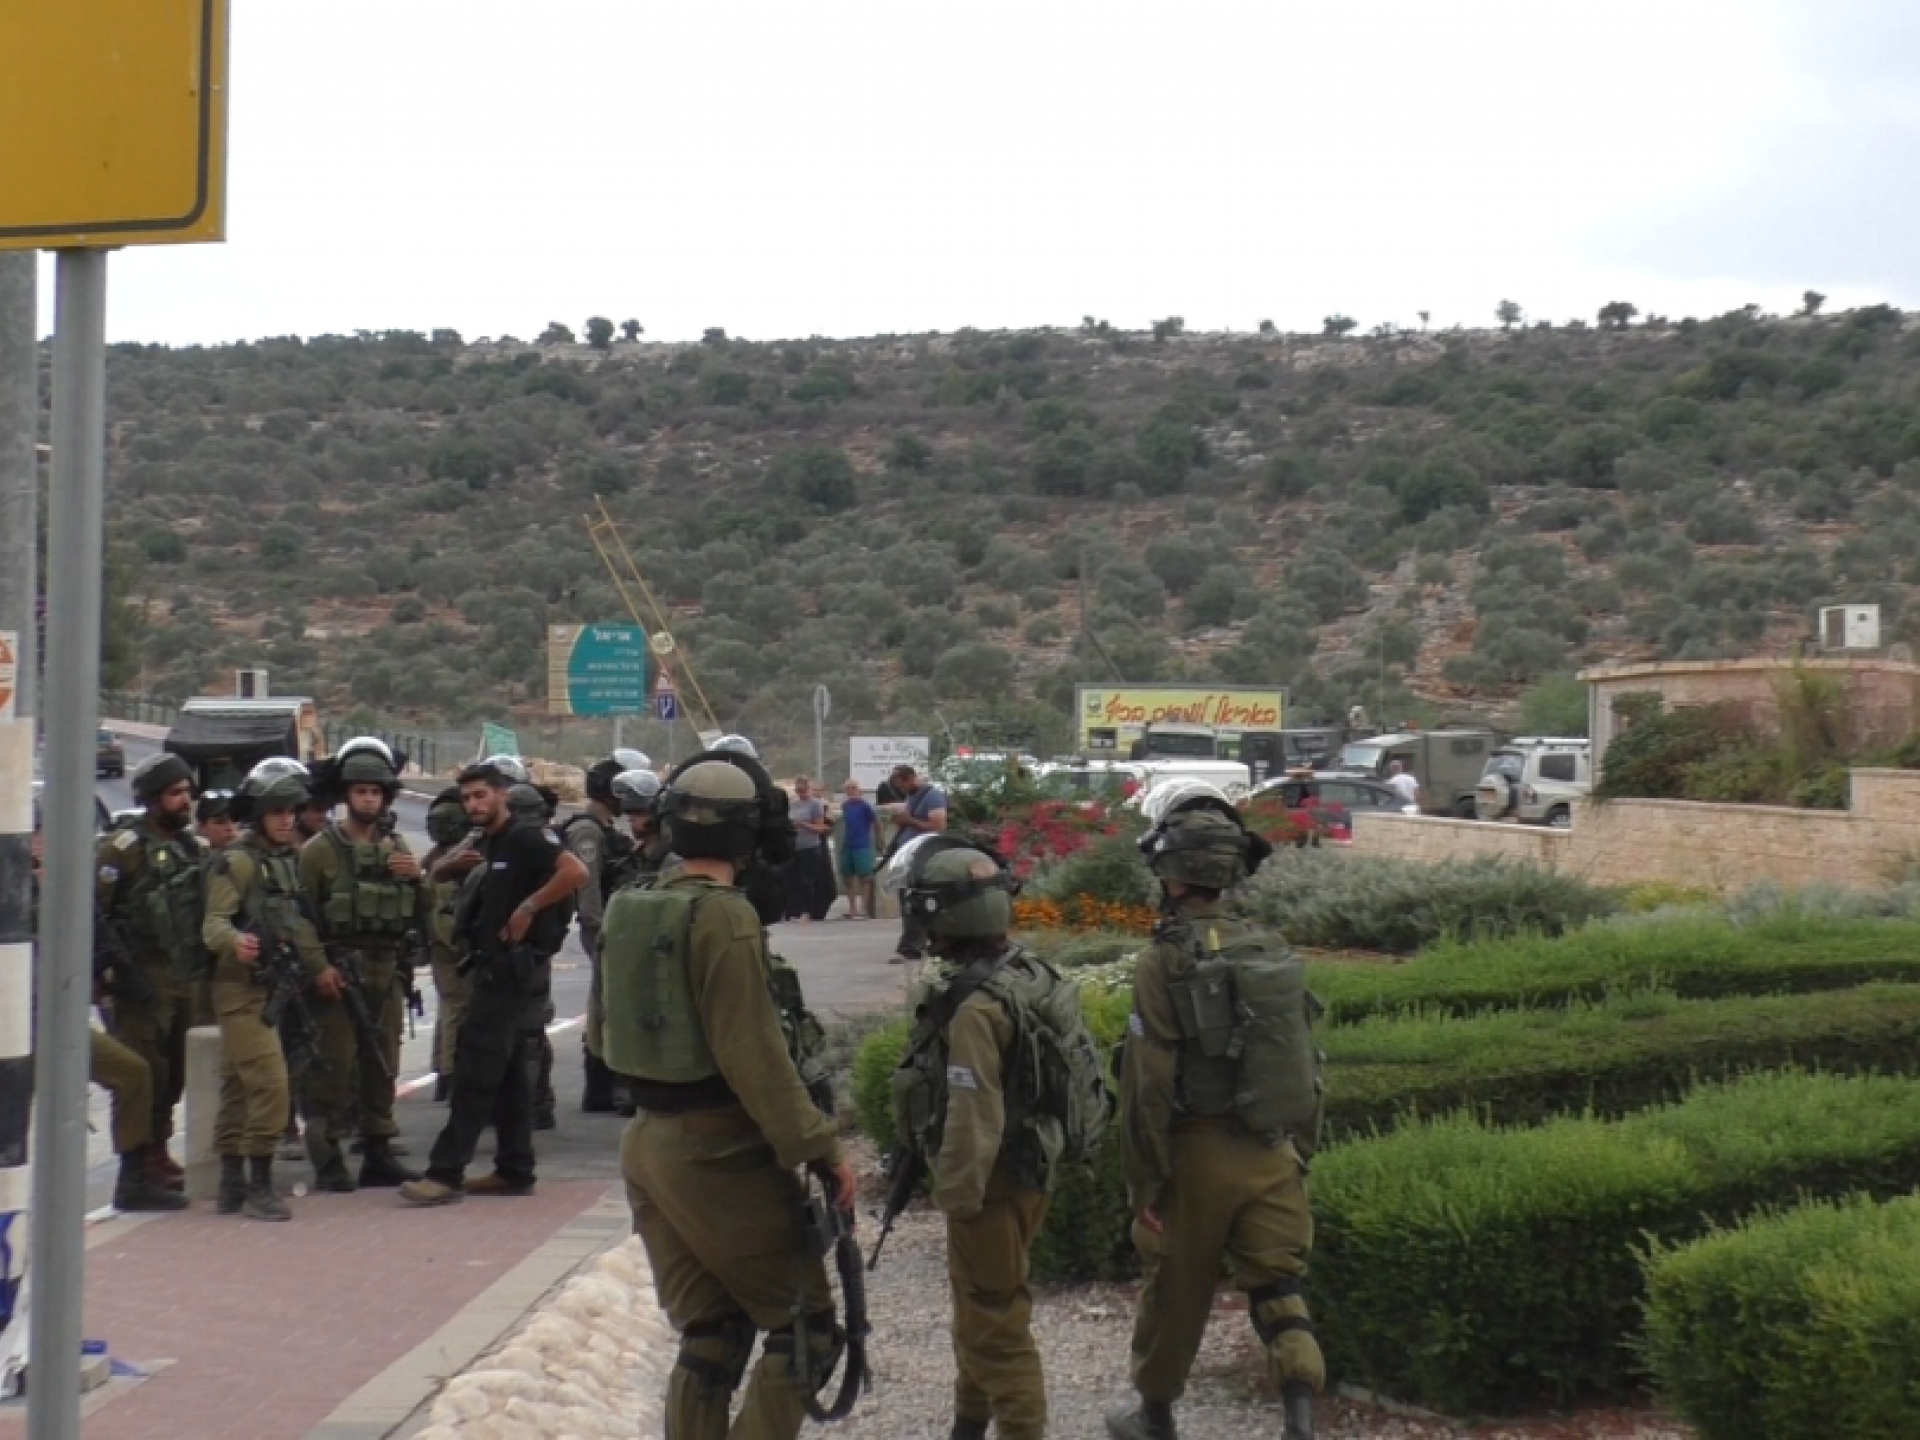 Armed soldiers at the entrance to the Ariel settlement